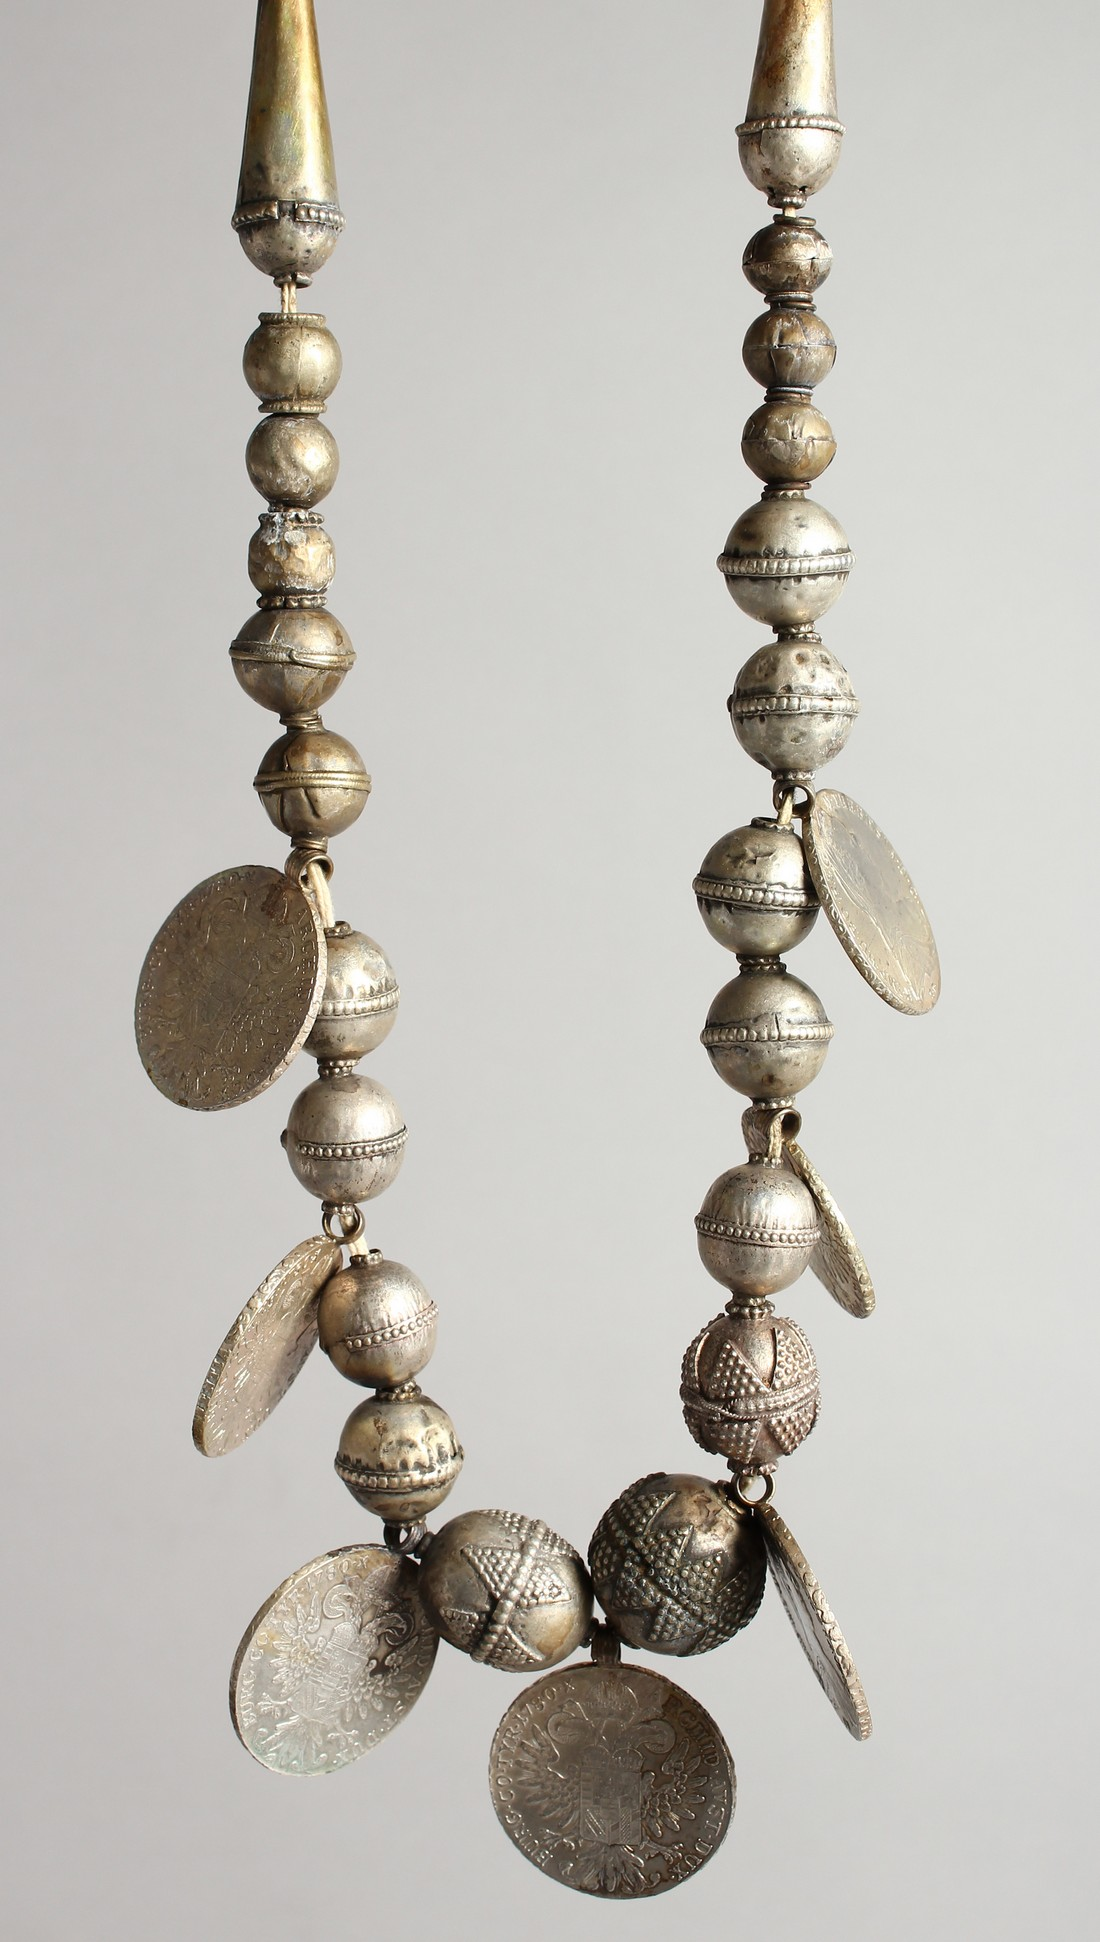 AN ISLAMIC SILVER NECKLACE with seven coins.